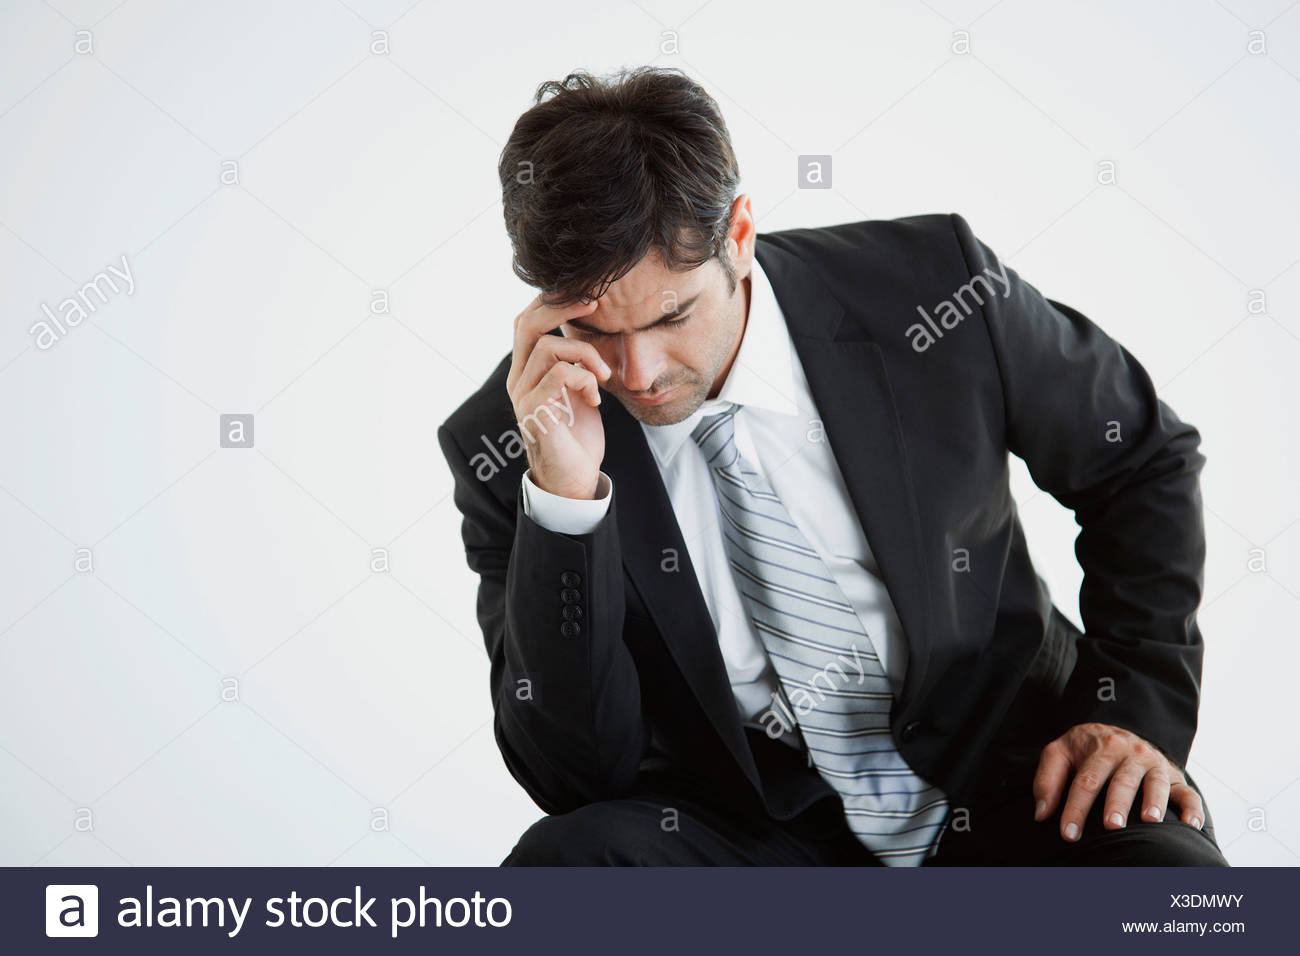 Businessman deep in thought facing difficulty - Stock Image